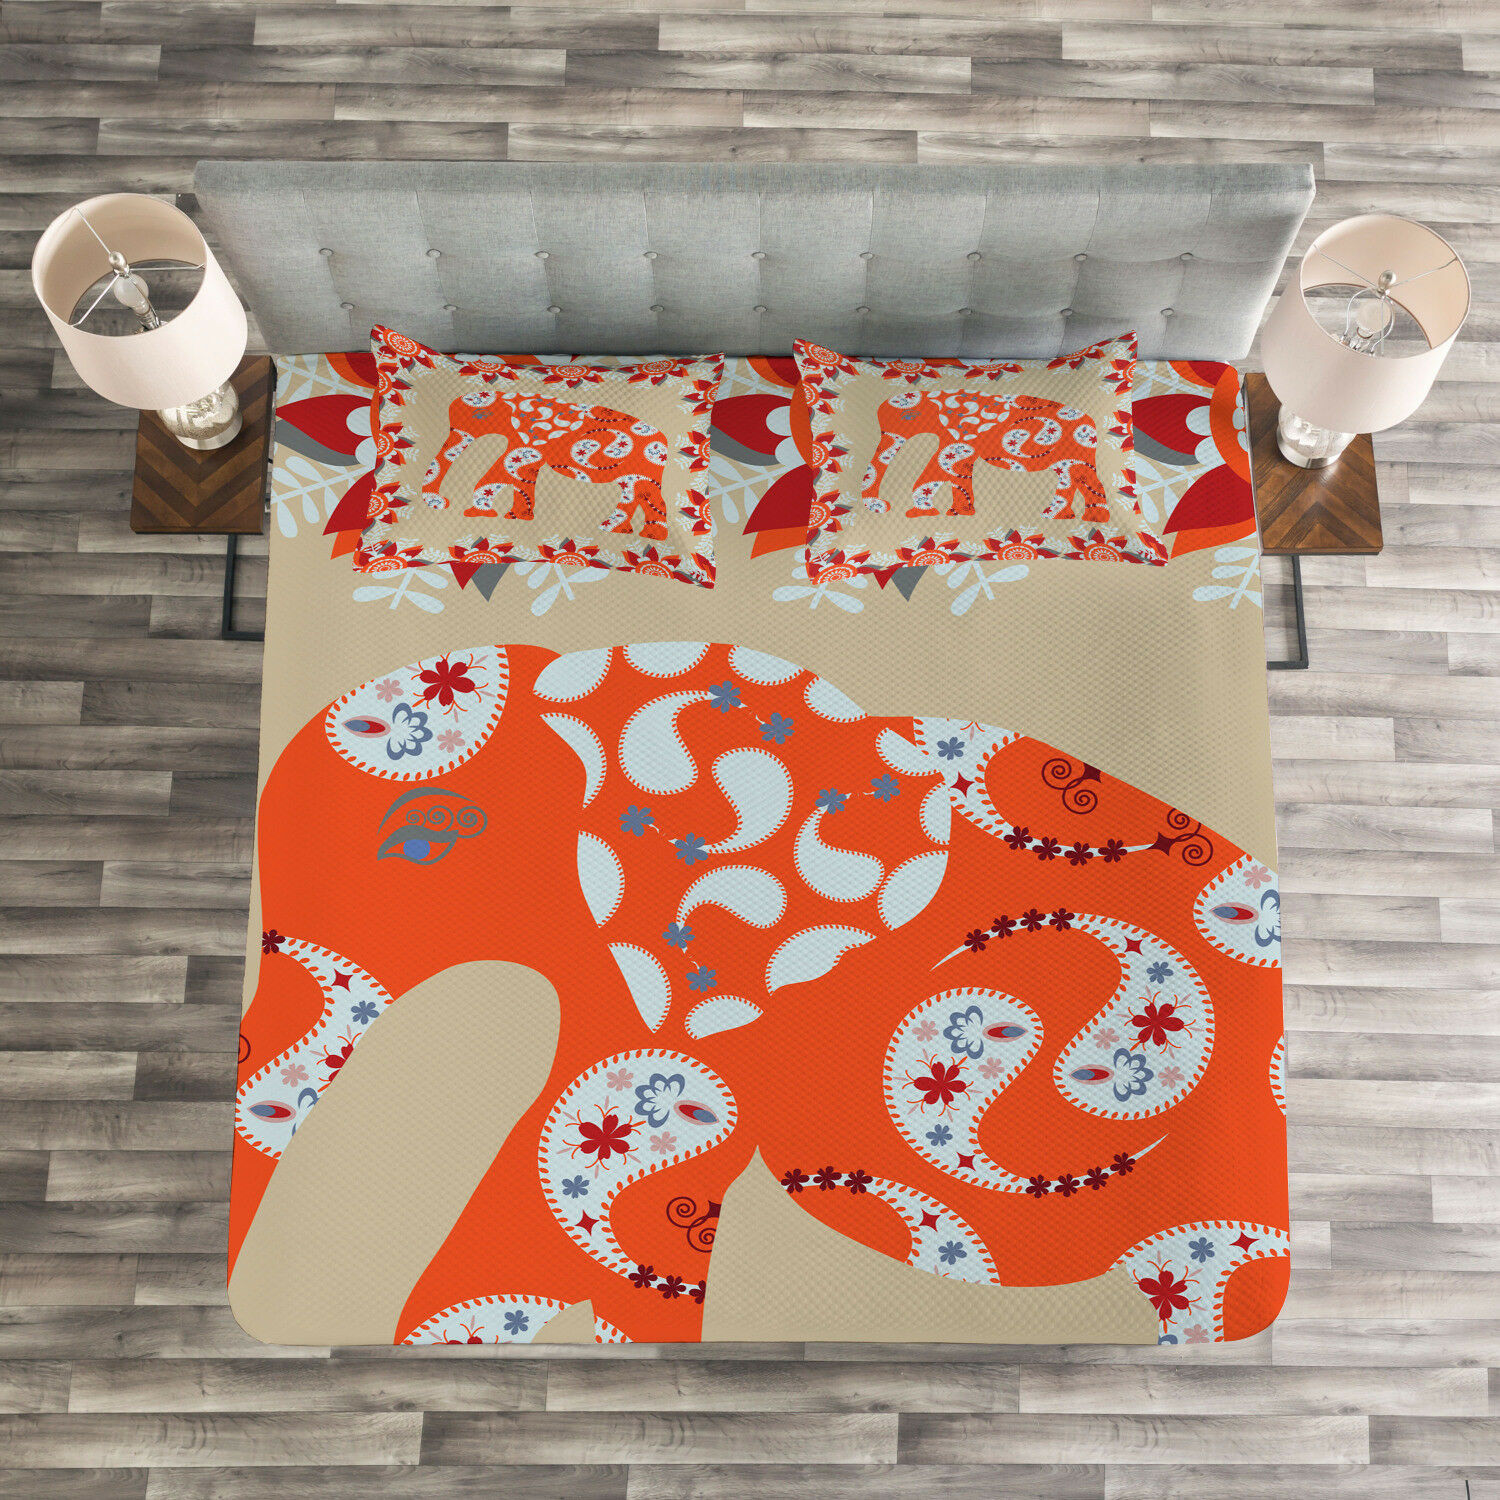 Ethnic Quilted Bedspread & Pillow Shams Set, Elephant Asian Style Print